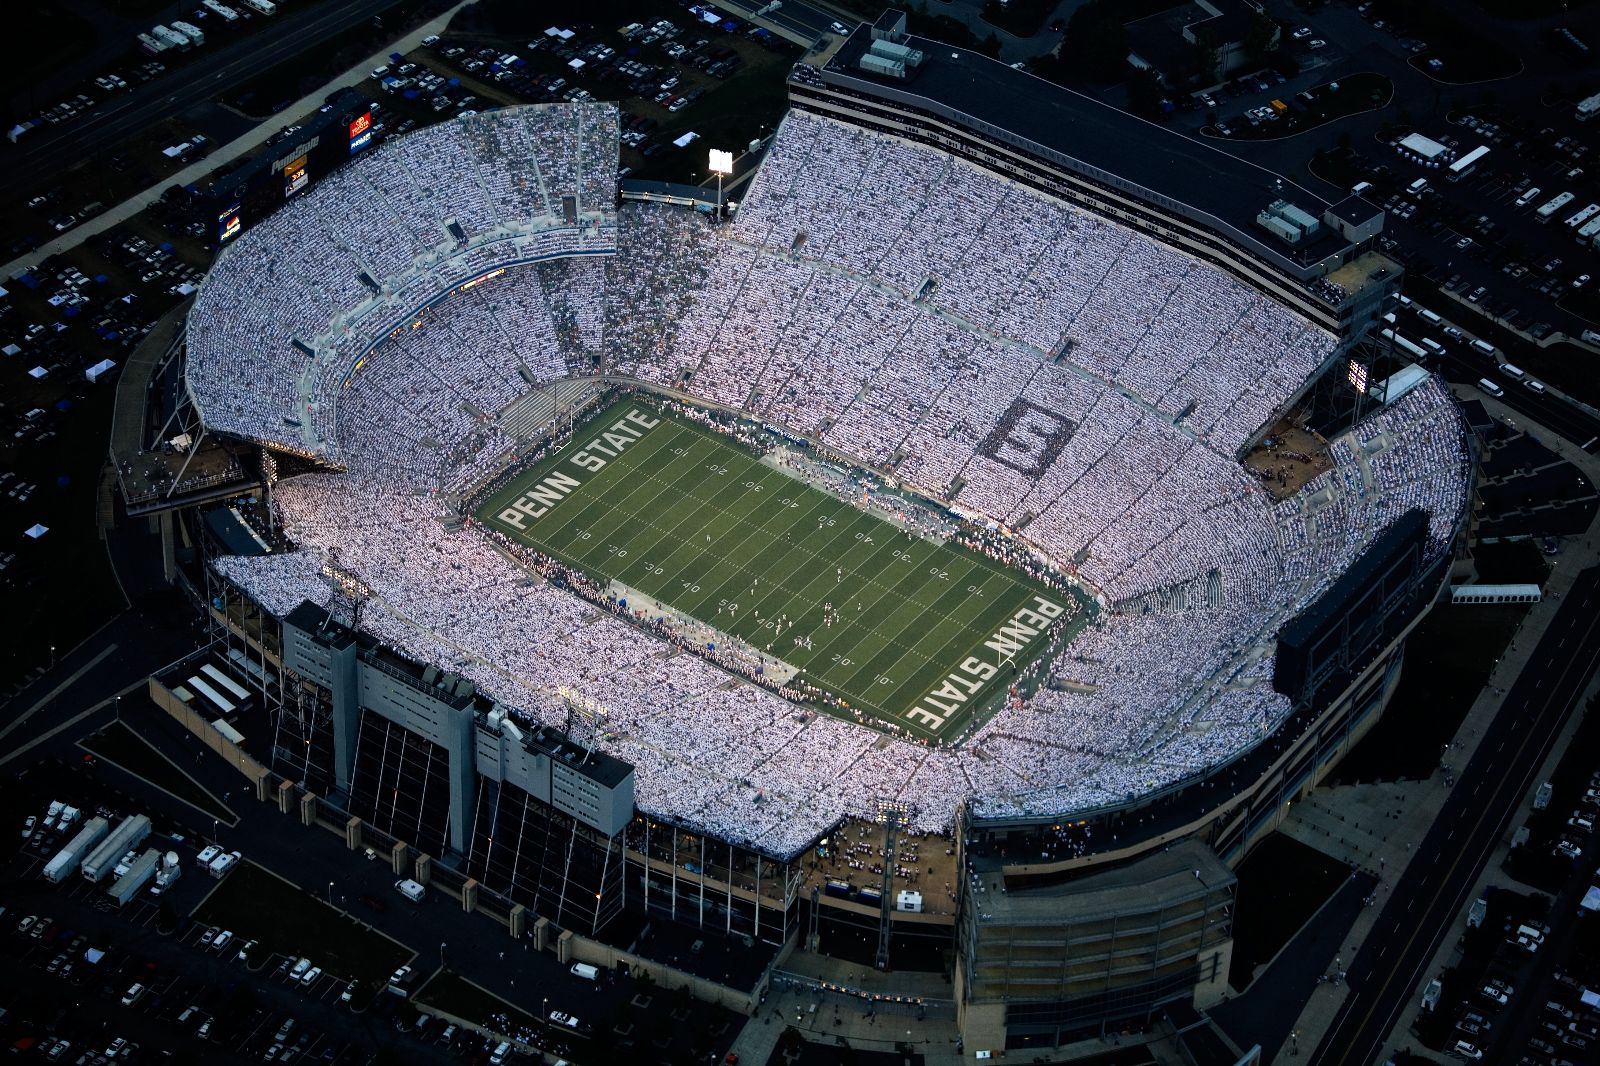 48bb509fe02 8 Reasons Why Penn State Is The Best College On Earth | Penn State ...